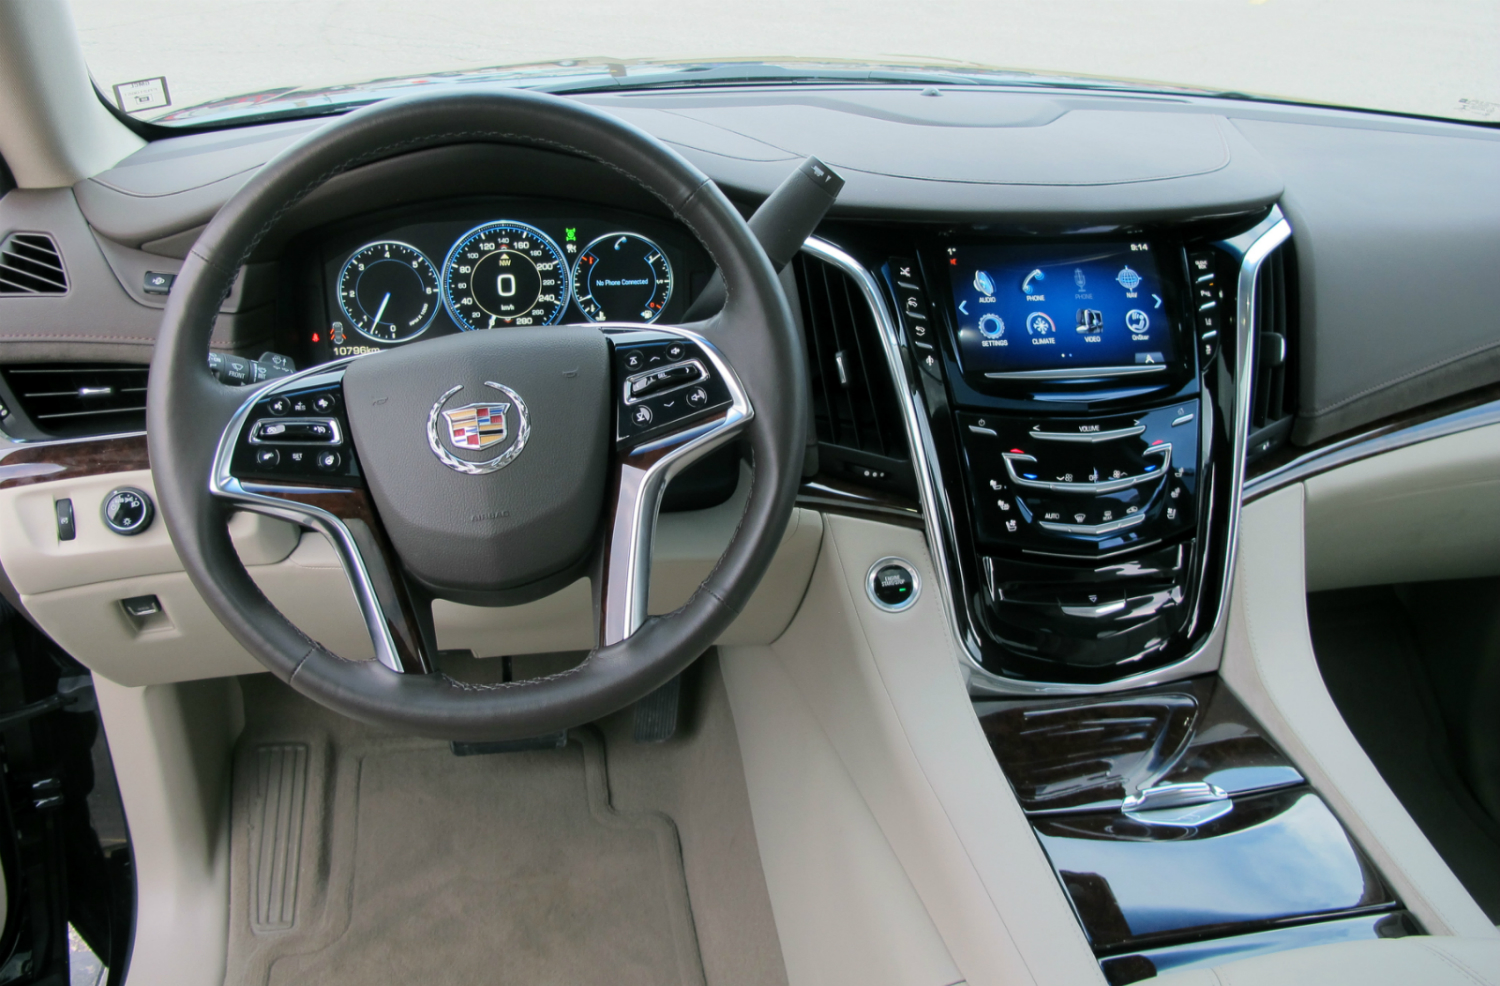 2015 cadillac escalade more power luxury efficiency html. Black Bedroom Furniture Sets. Home Design Ideas